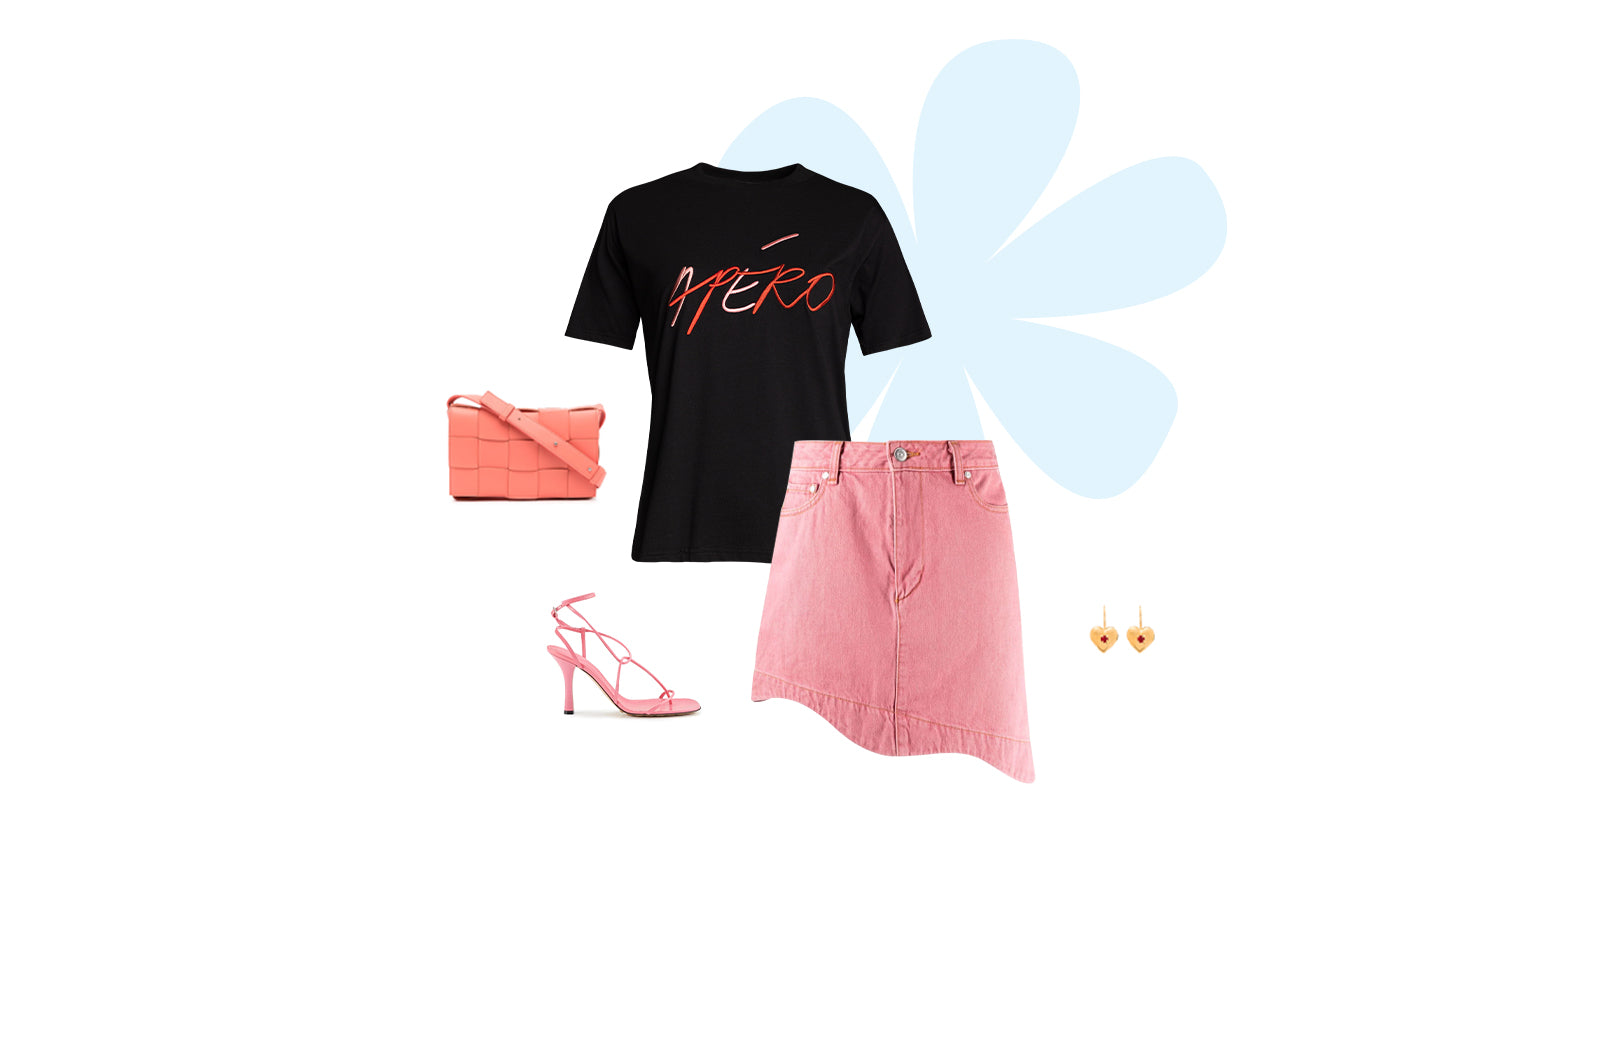 Milan Embroidered Tee